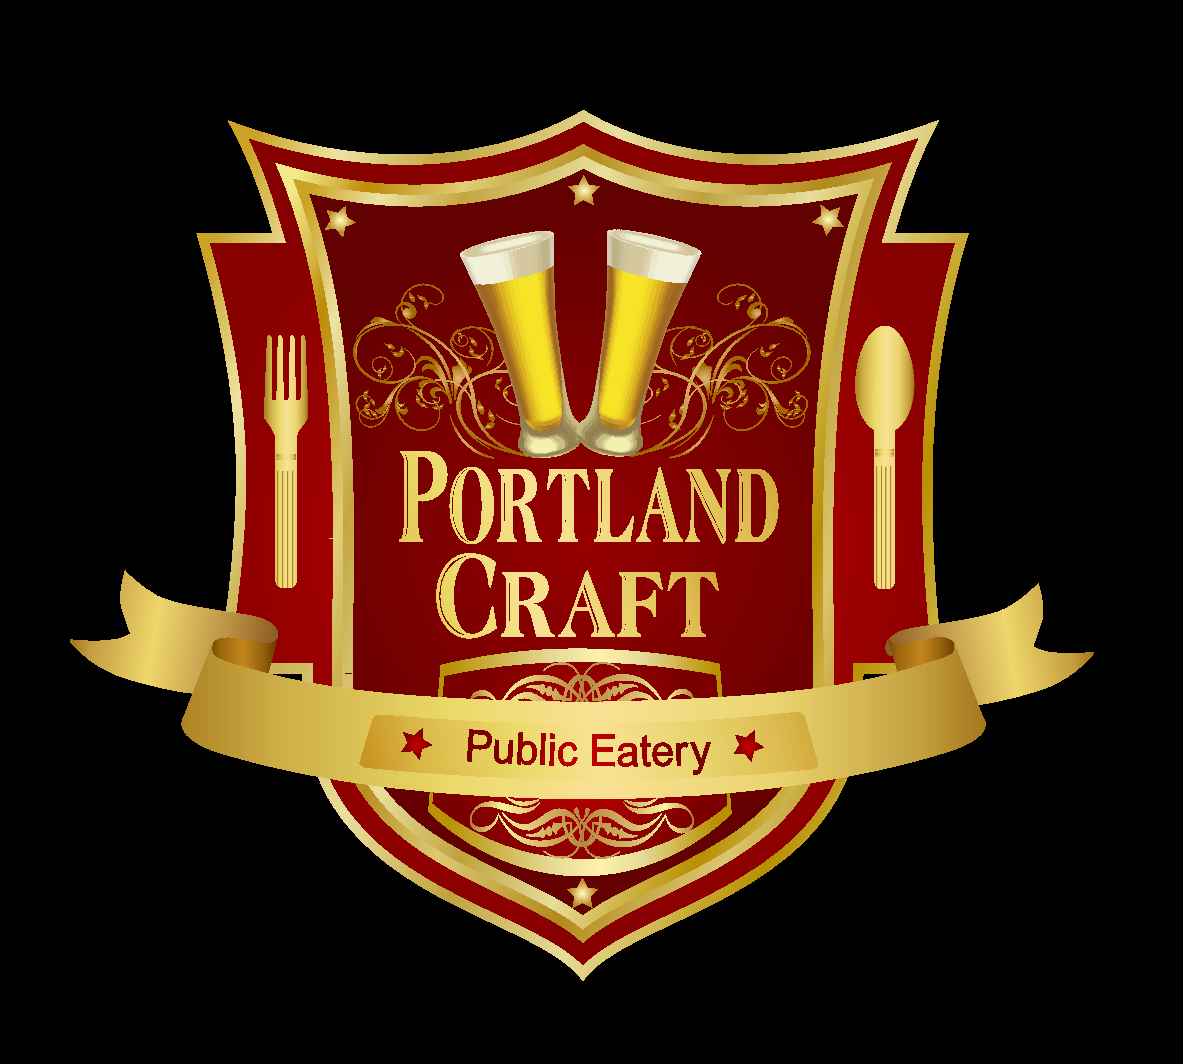 Logo Design by innocentangel707 - Entry No. 6 in the Logo Design Contest New Logo Design for Portland Craft Public Eatery.